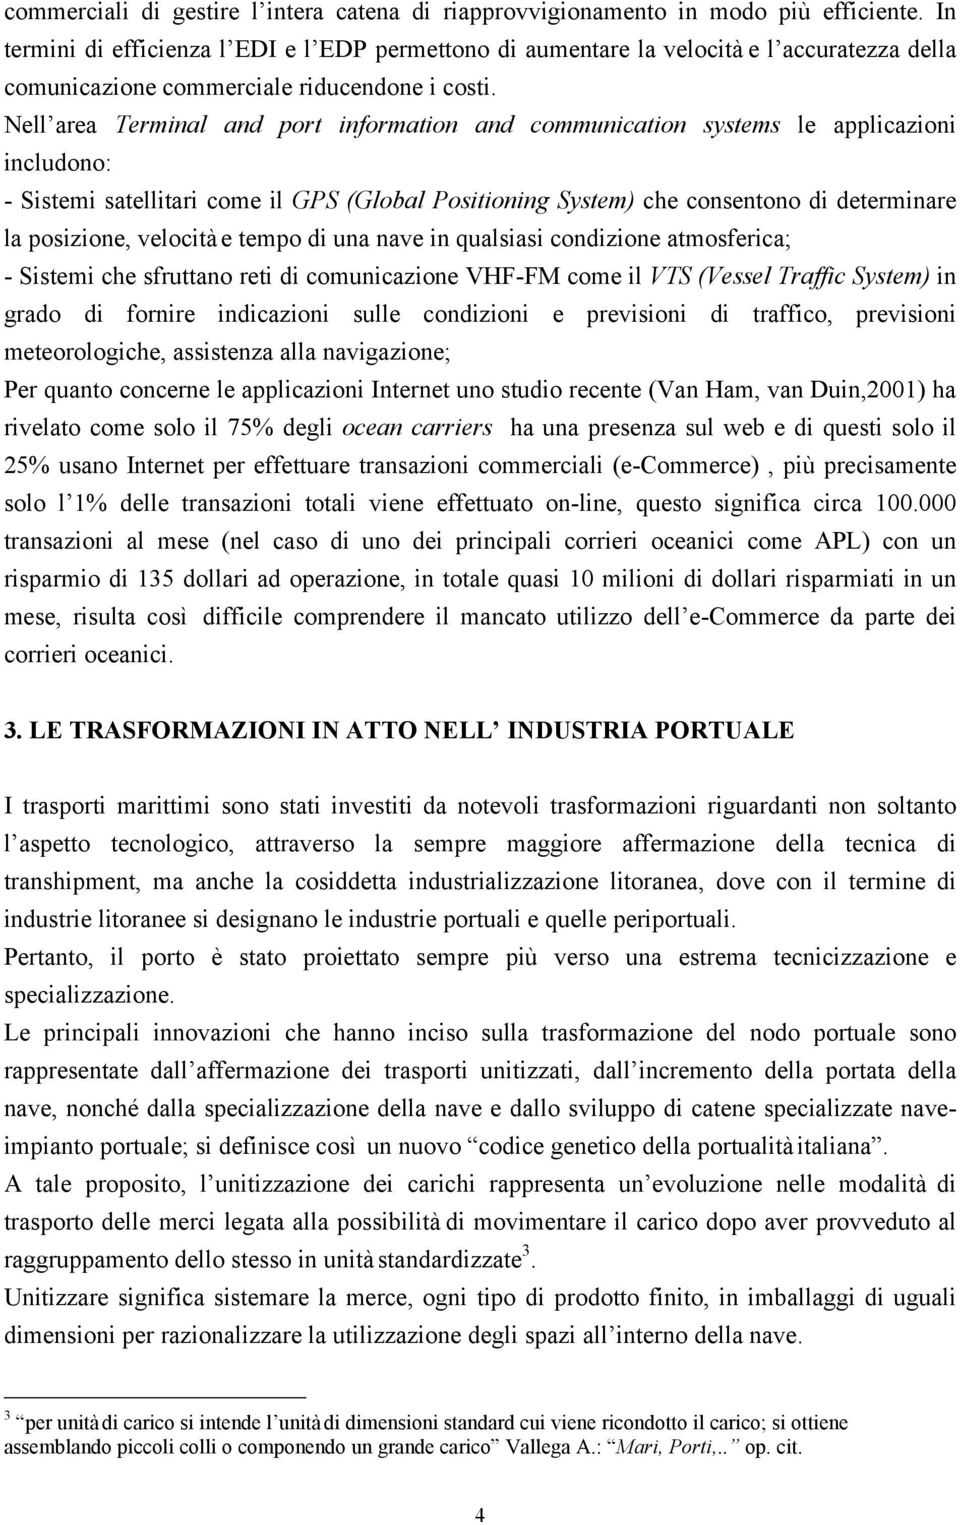 Nell area Terminal and port information and communication systems le applicazioni includono: - Sistemi satellitari come il GPS (Global Positioning System) che consentono di determinare la posizione,